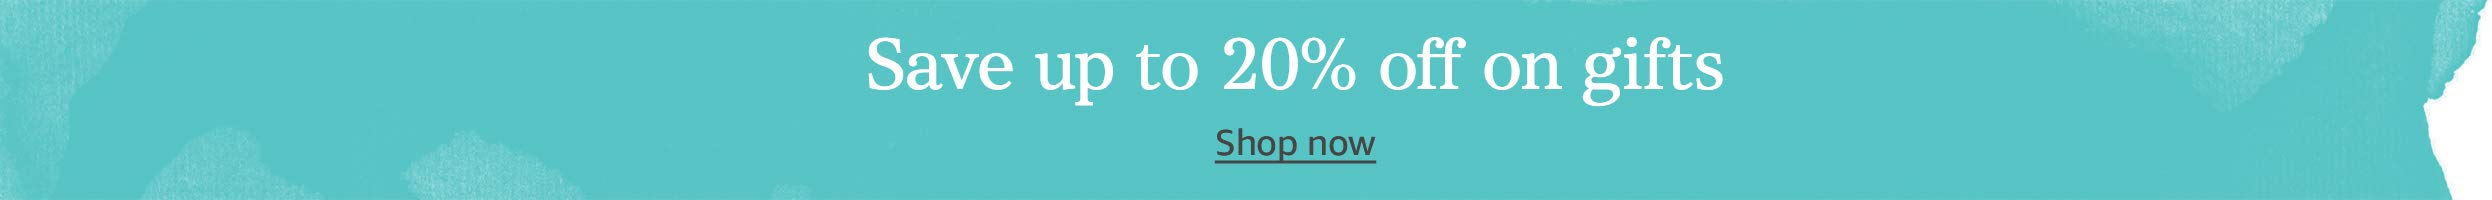 Save up to 20% off on gifts